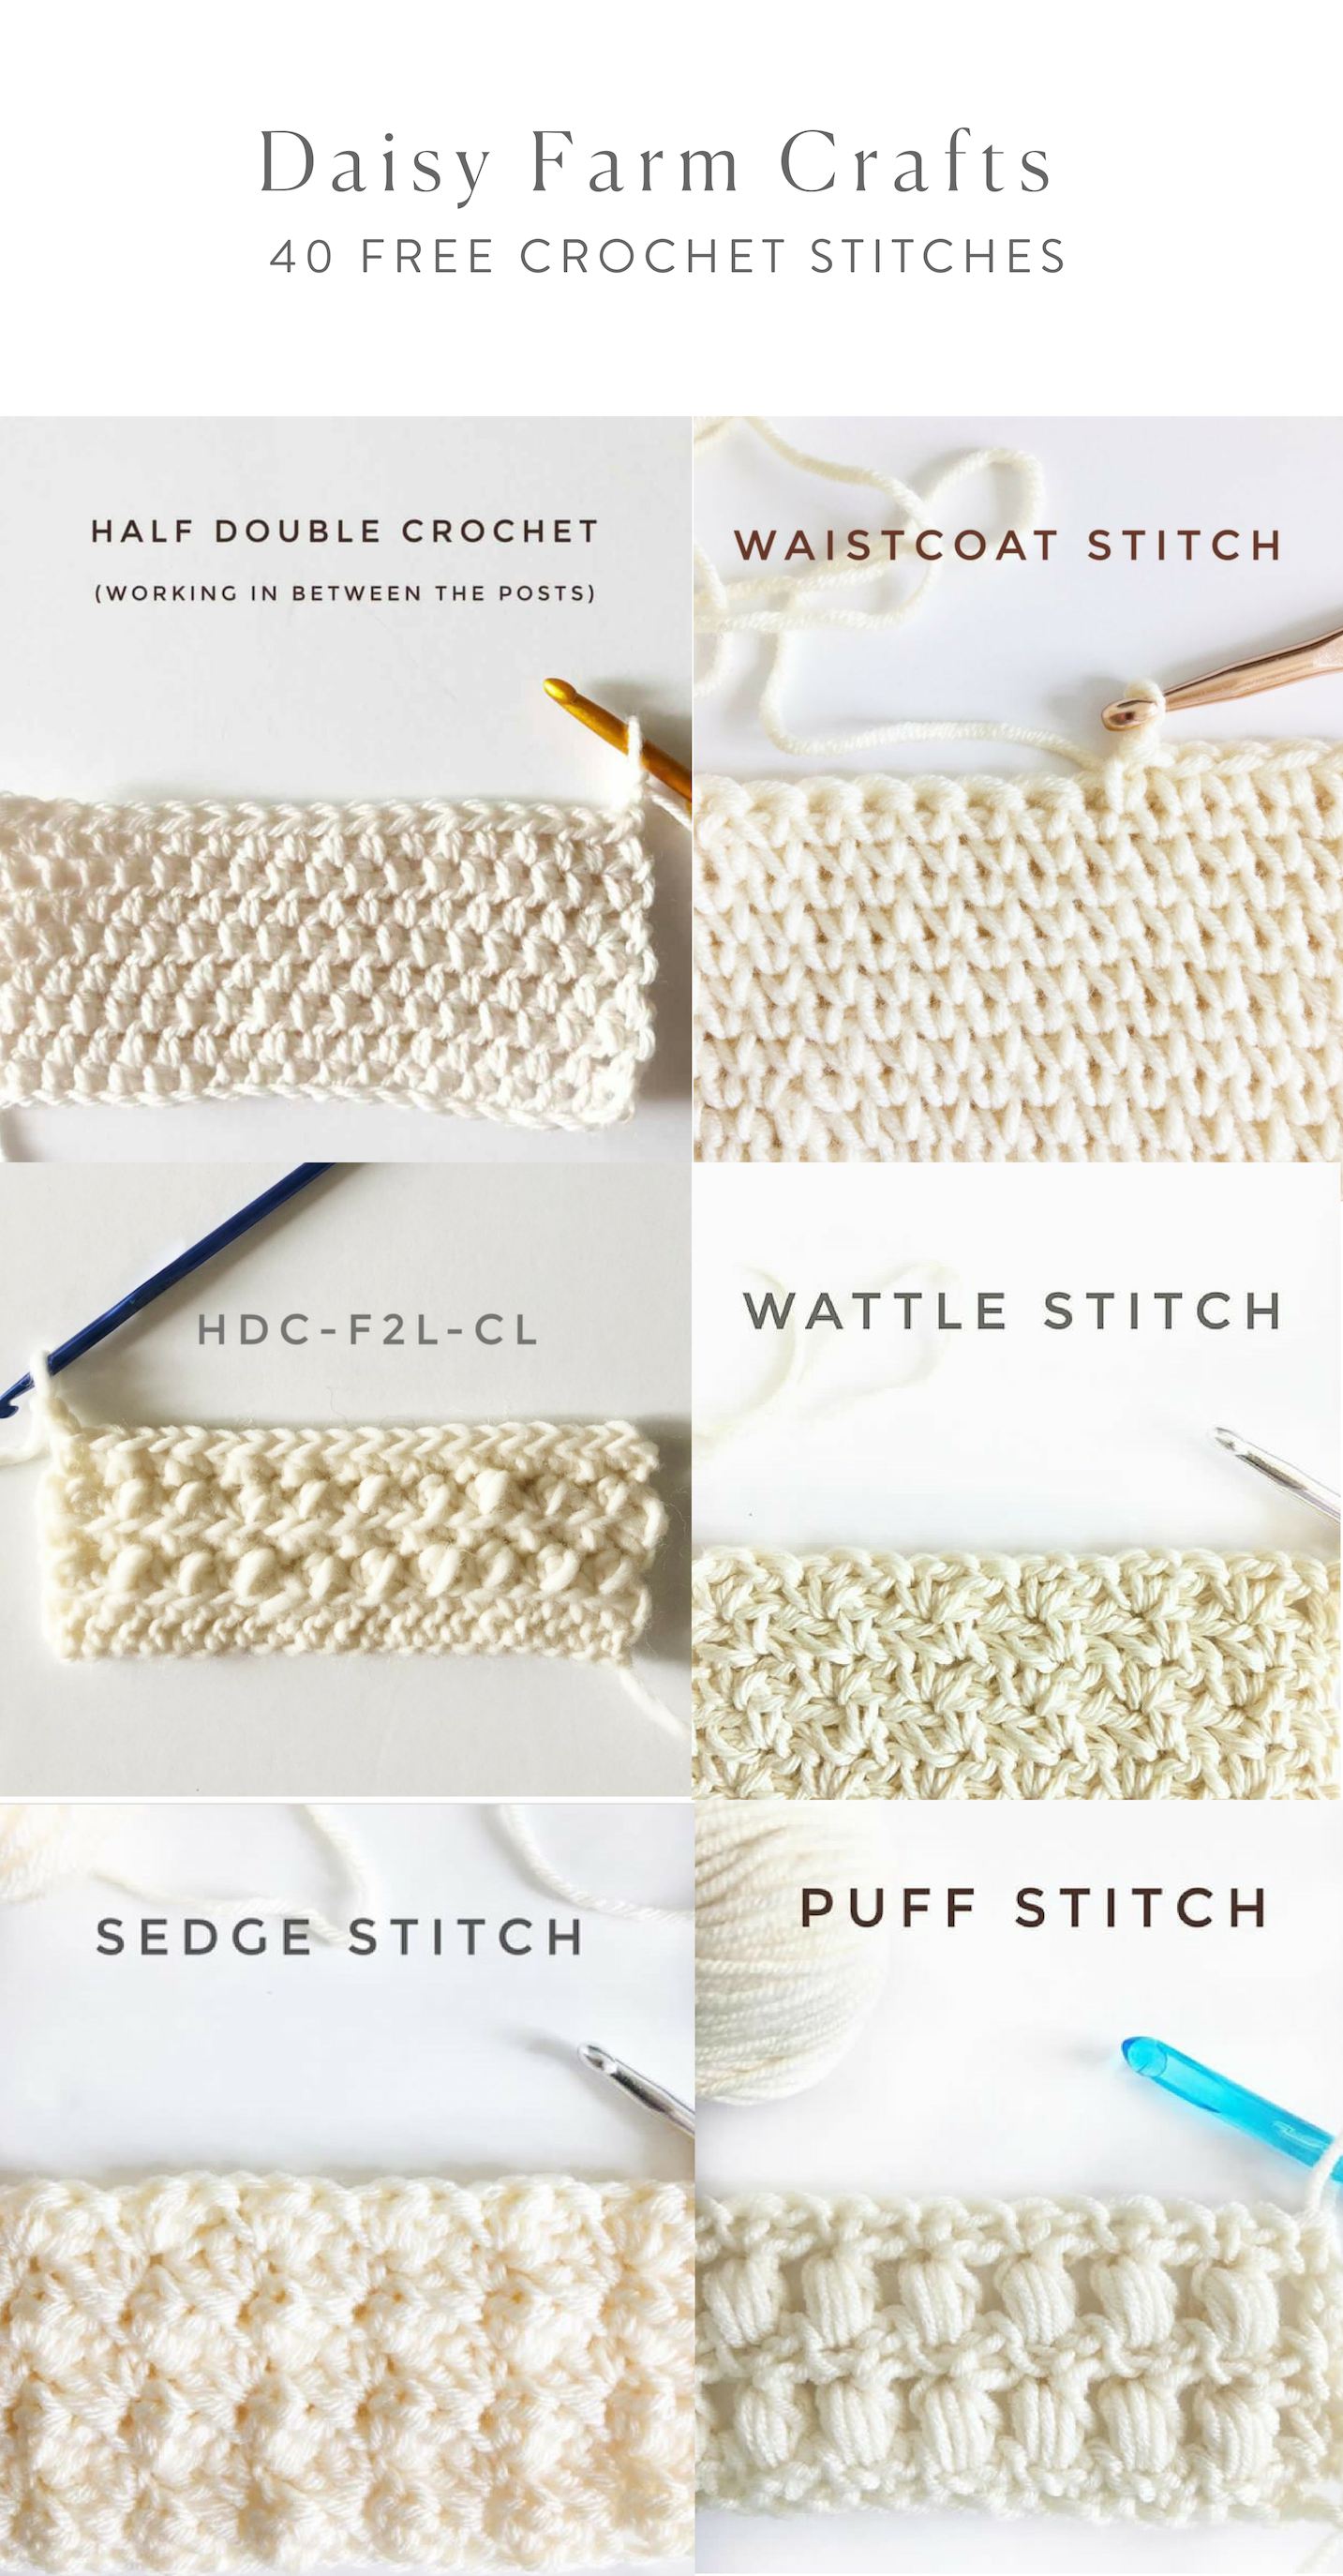 40 Free Crochet Stitches from Daisy Farm Crafts | crochet ...